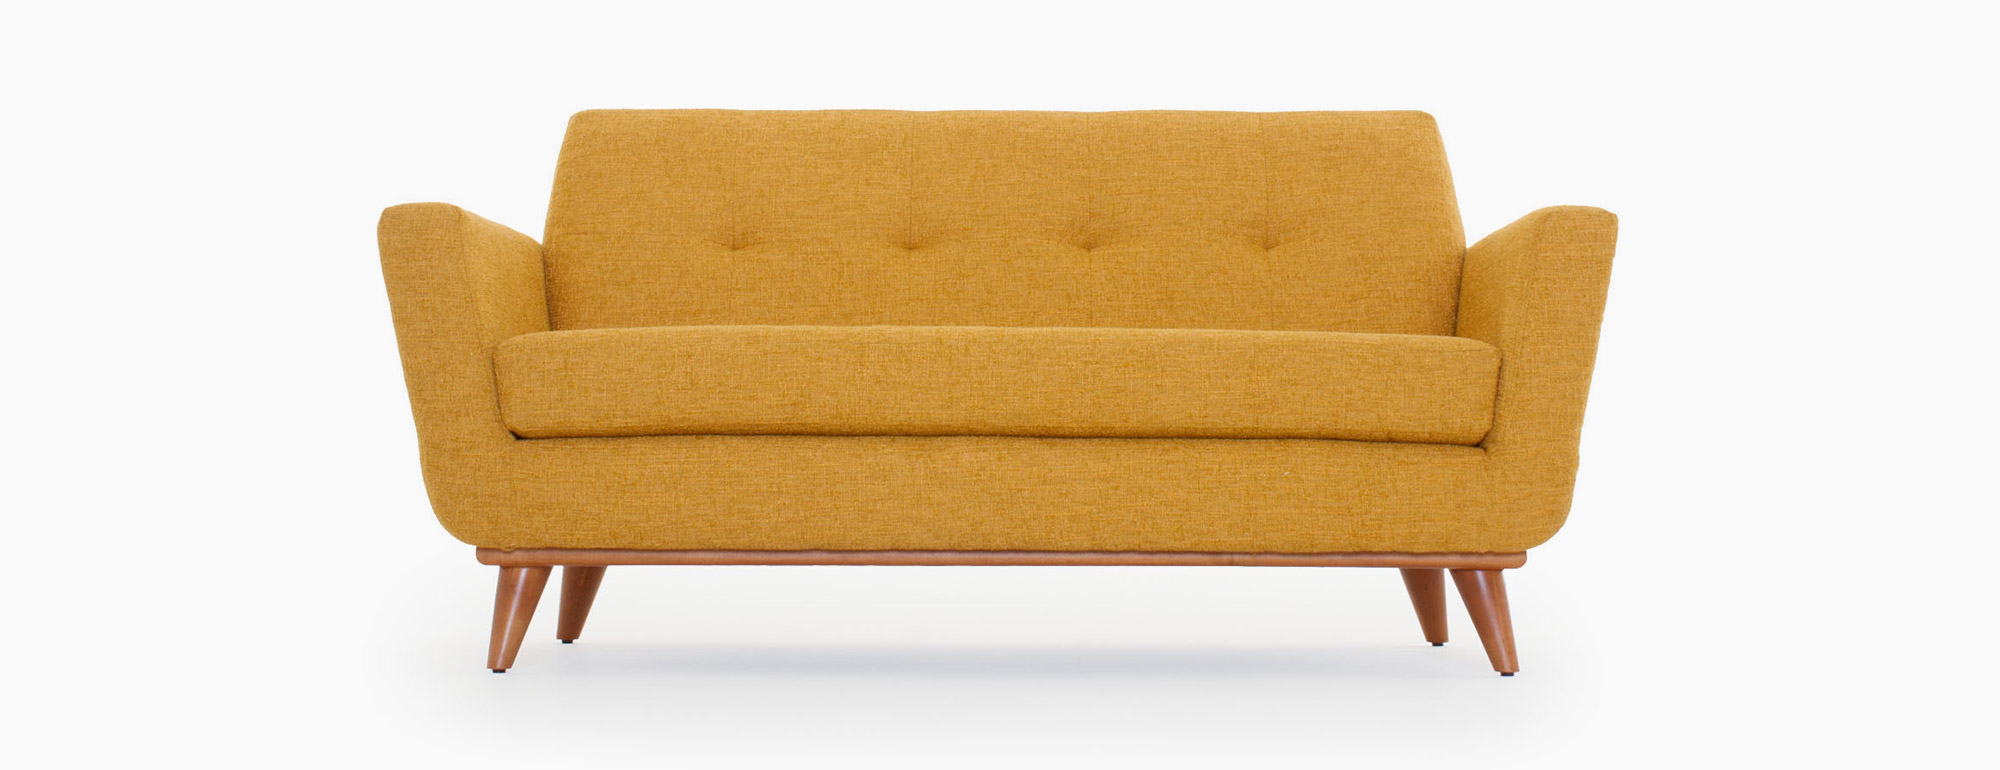 apartment sofa shown in cordova amber fabric DEBOEJW